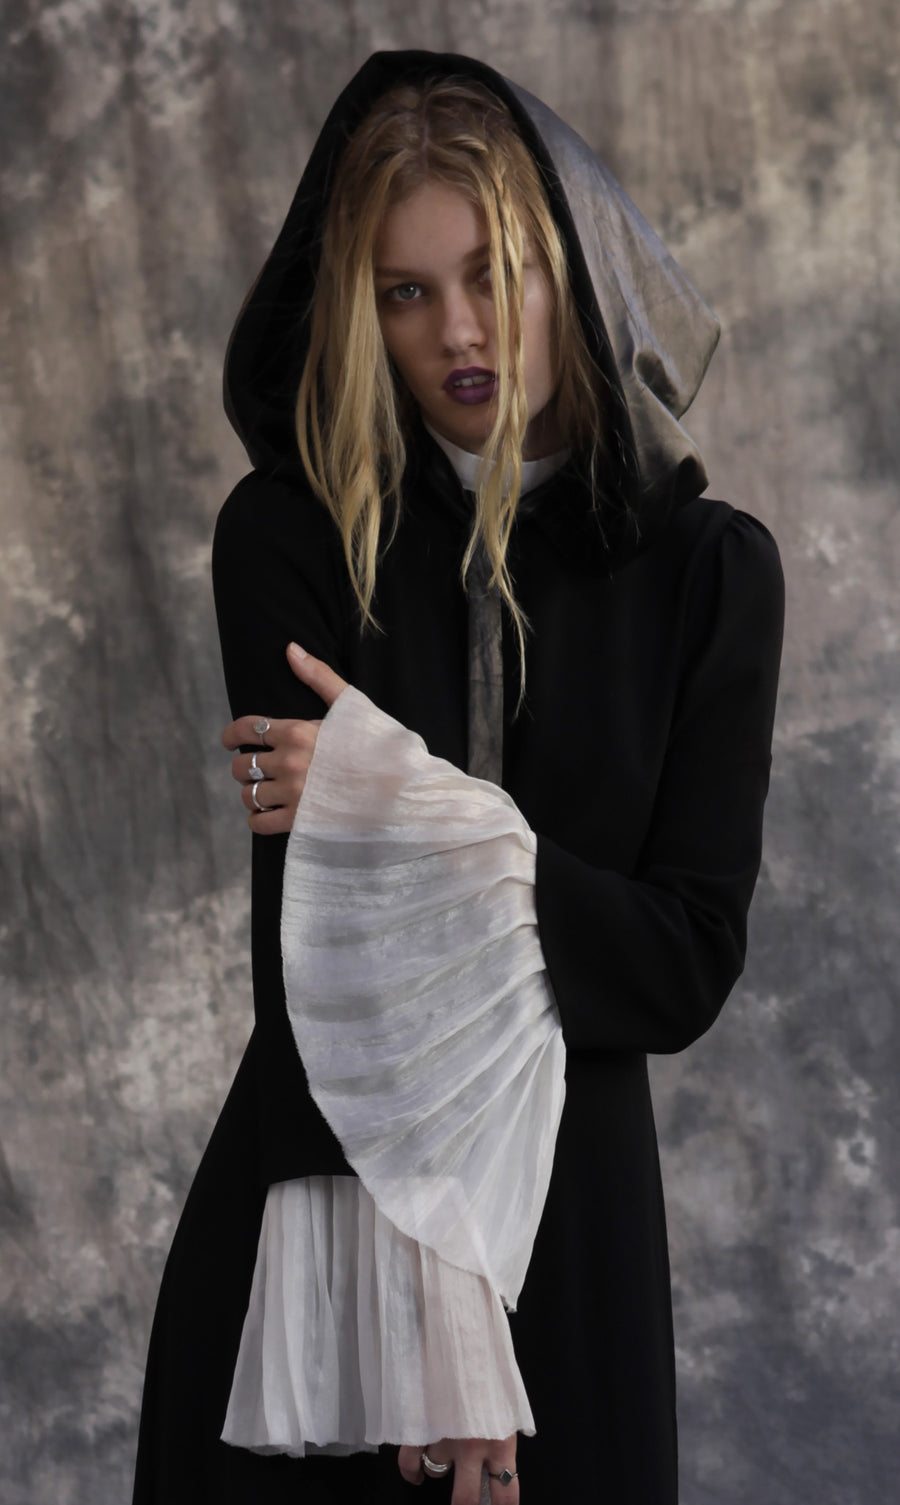 Maggie Laine IMG model Wendy Nichol SS17 Fashion Show Death Valley Reversible Leather & Cashmere Black Hood Handmade in NYC New York City Winter Fall Hat Headpiece Bow Tie Shoulder Cover Reversible Hooded Goth Gothic Pilgrim